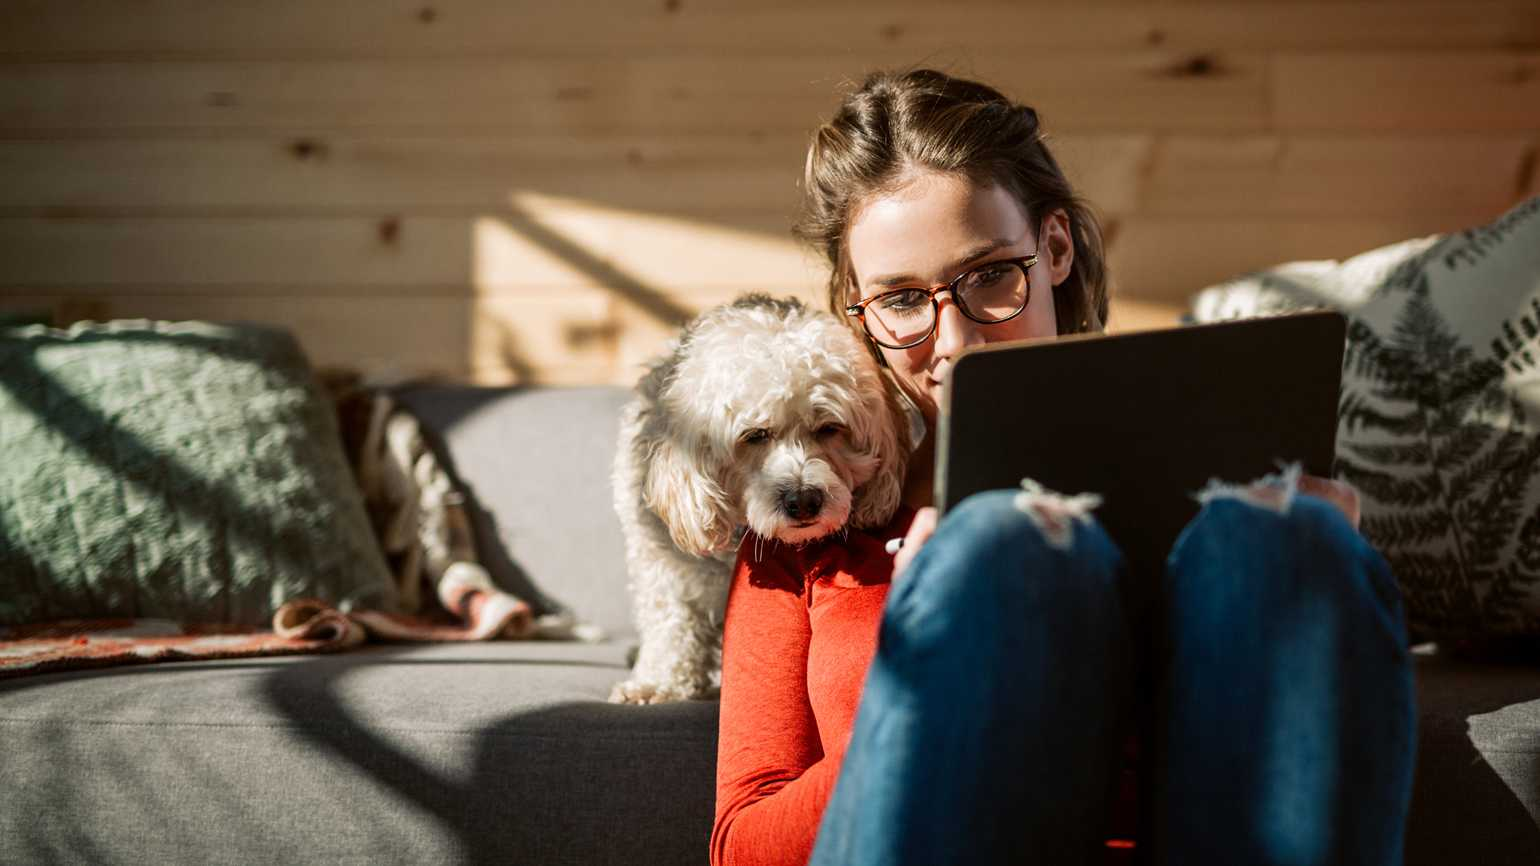 A woman working from home with her dog peering over her shoulder.